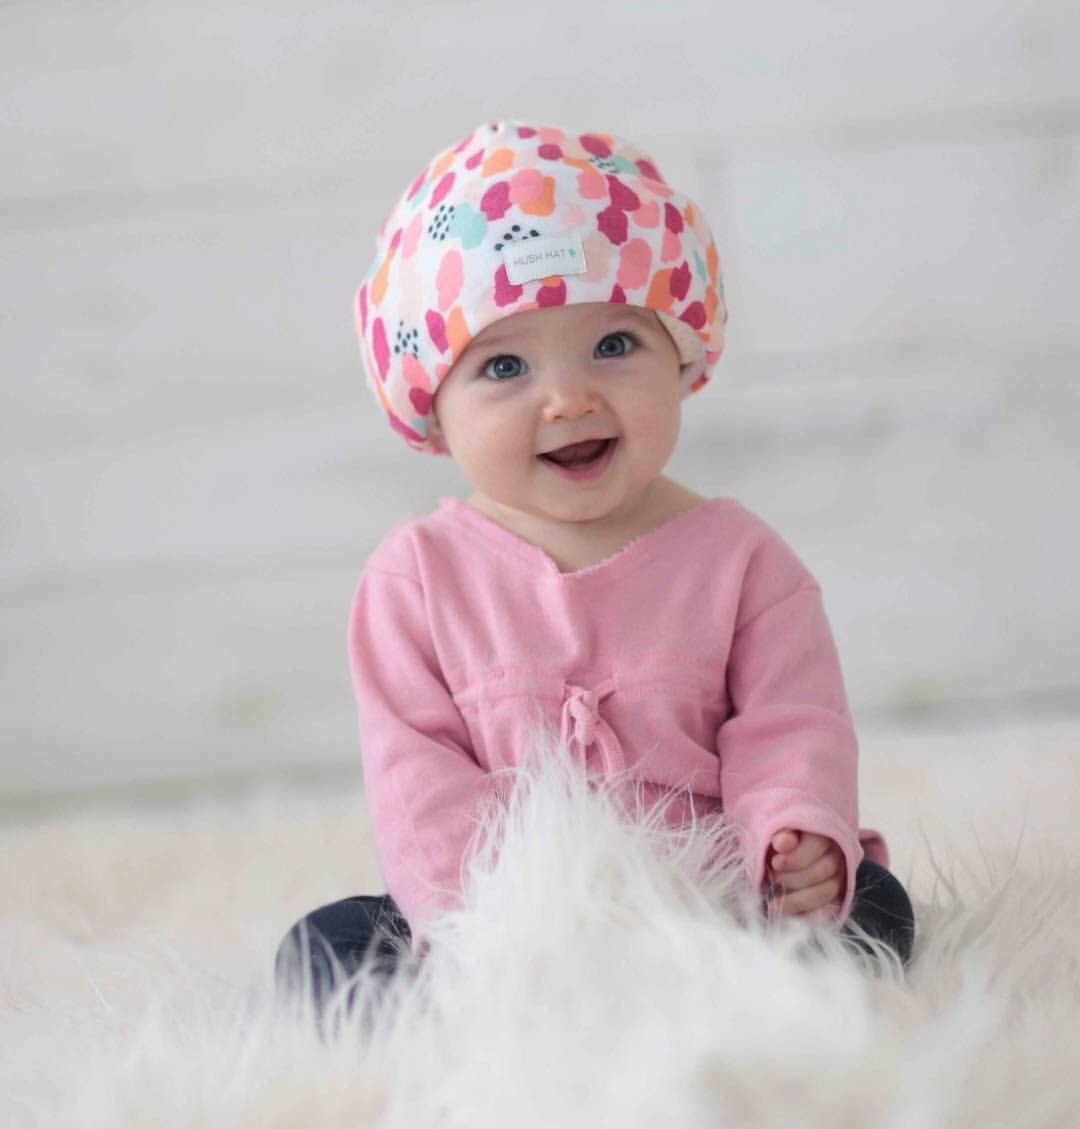 Hush Baby Noise Reduction Hats